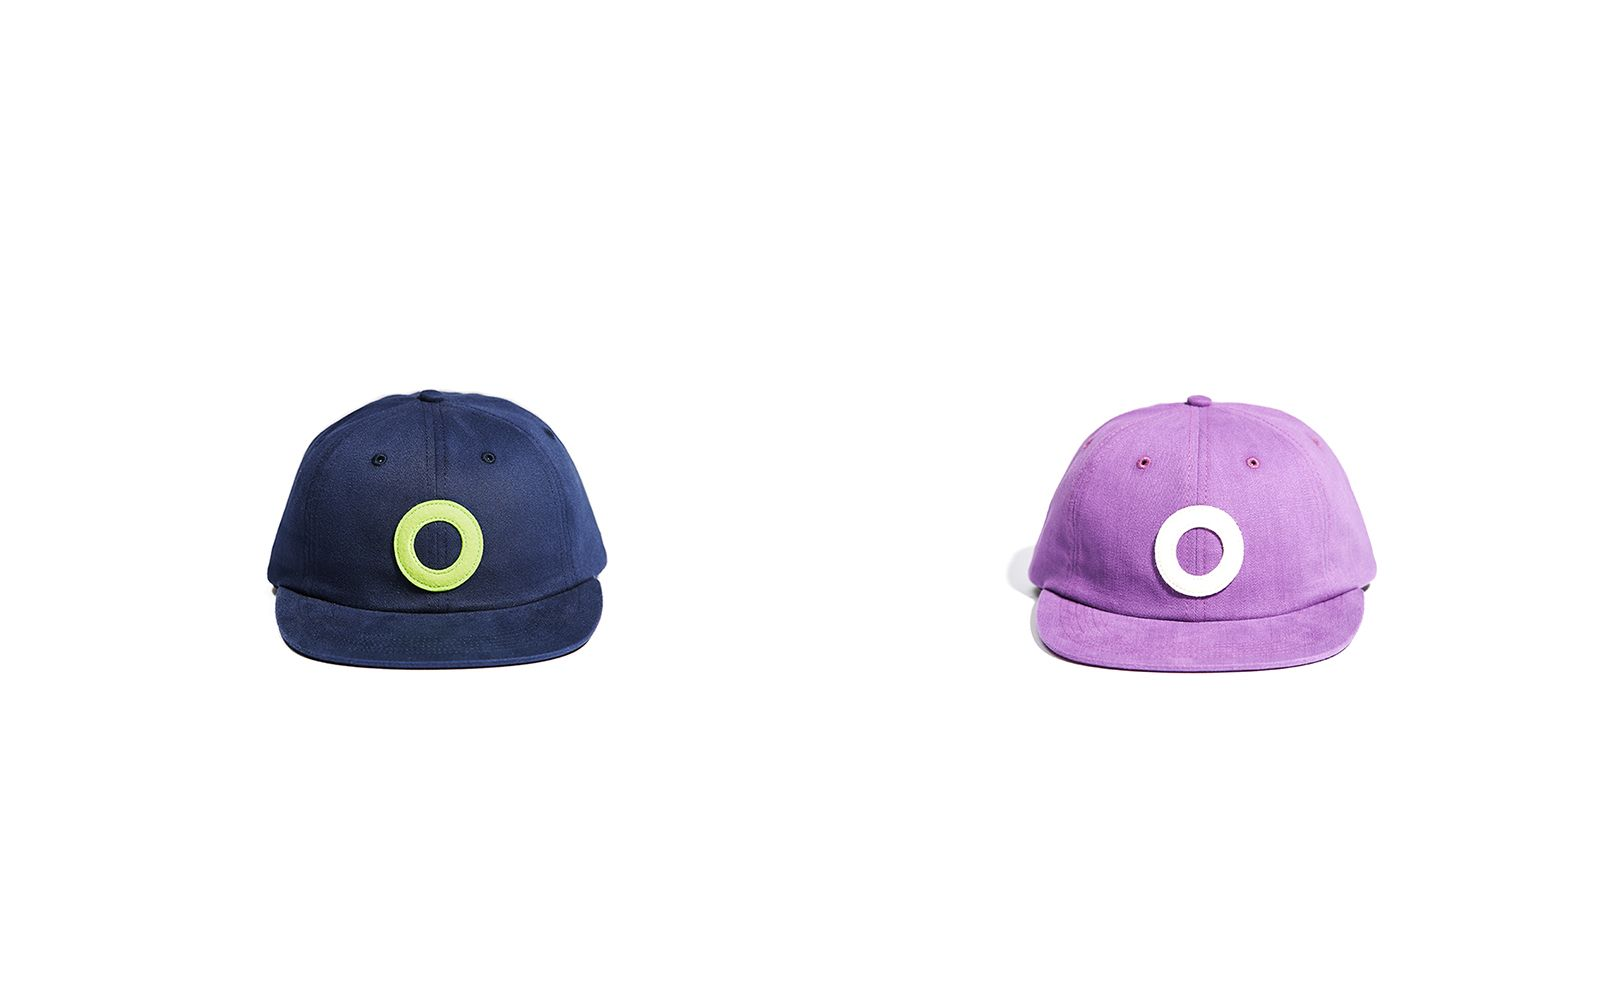 pop-trading-company-aw17-product-o-sixpanel-hat-navy-violet